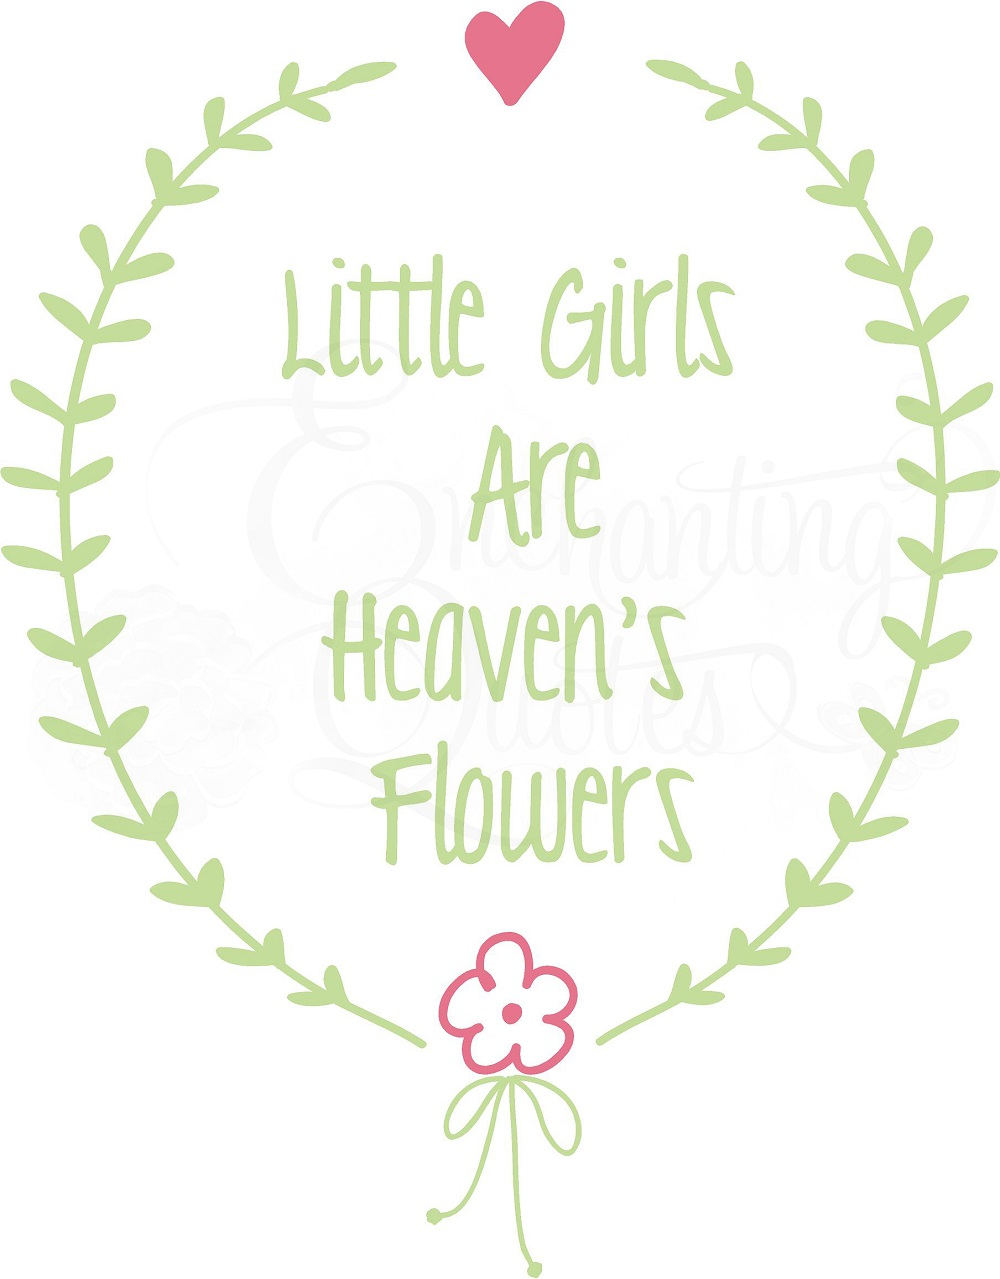 little girls are heavens flowers